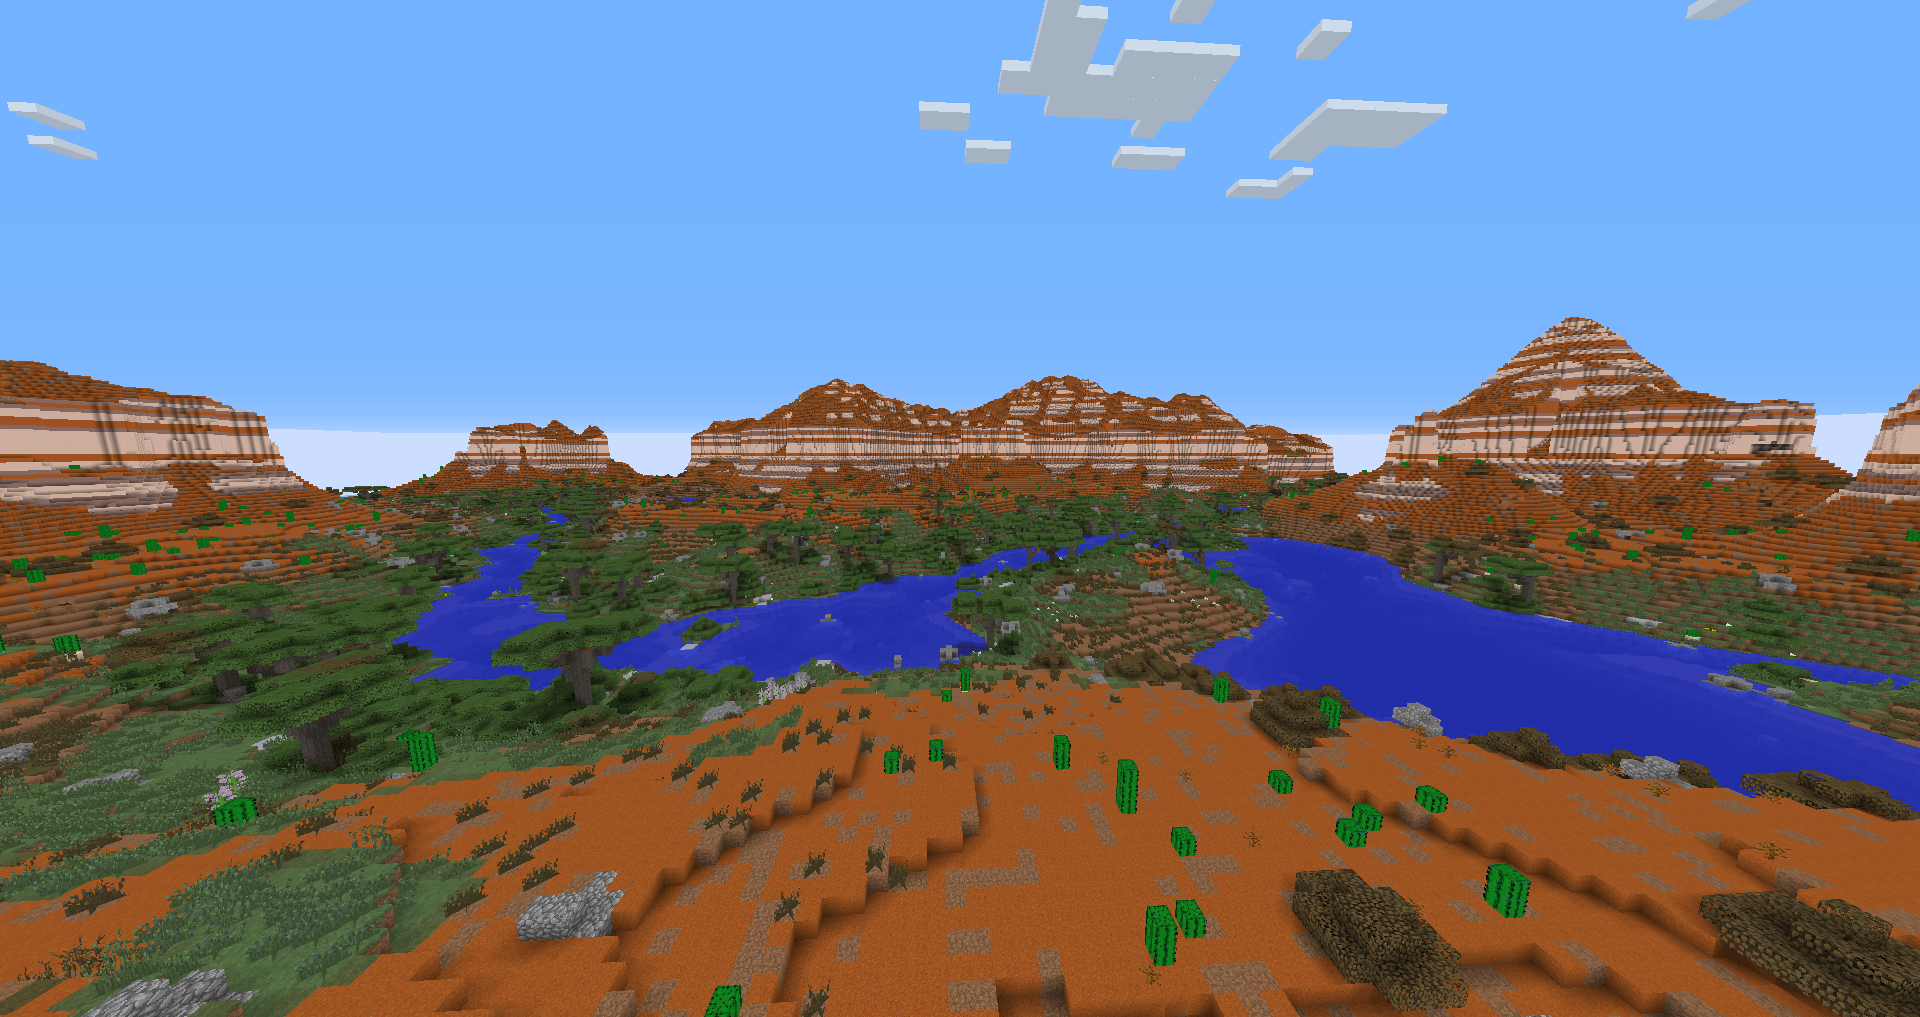 Realistic terrain generation mod for minecraft 191891710 realistic terrain generation mod for minecraft 191891710 minecraftsix gumiabroncs Image collections